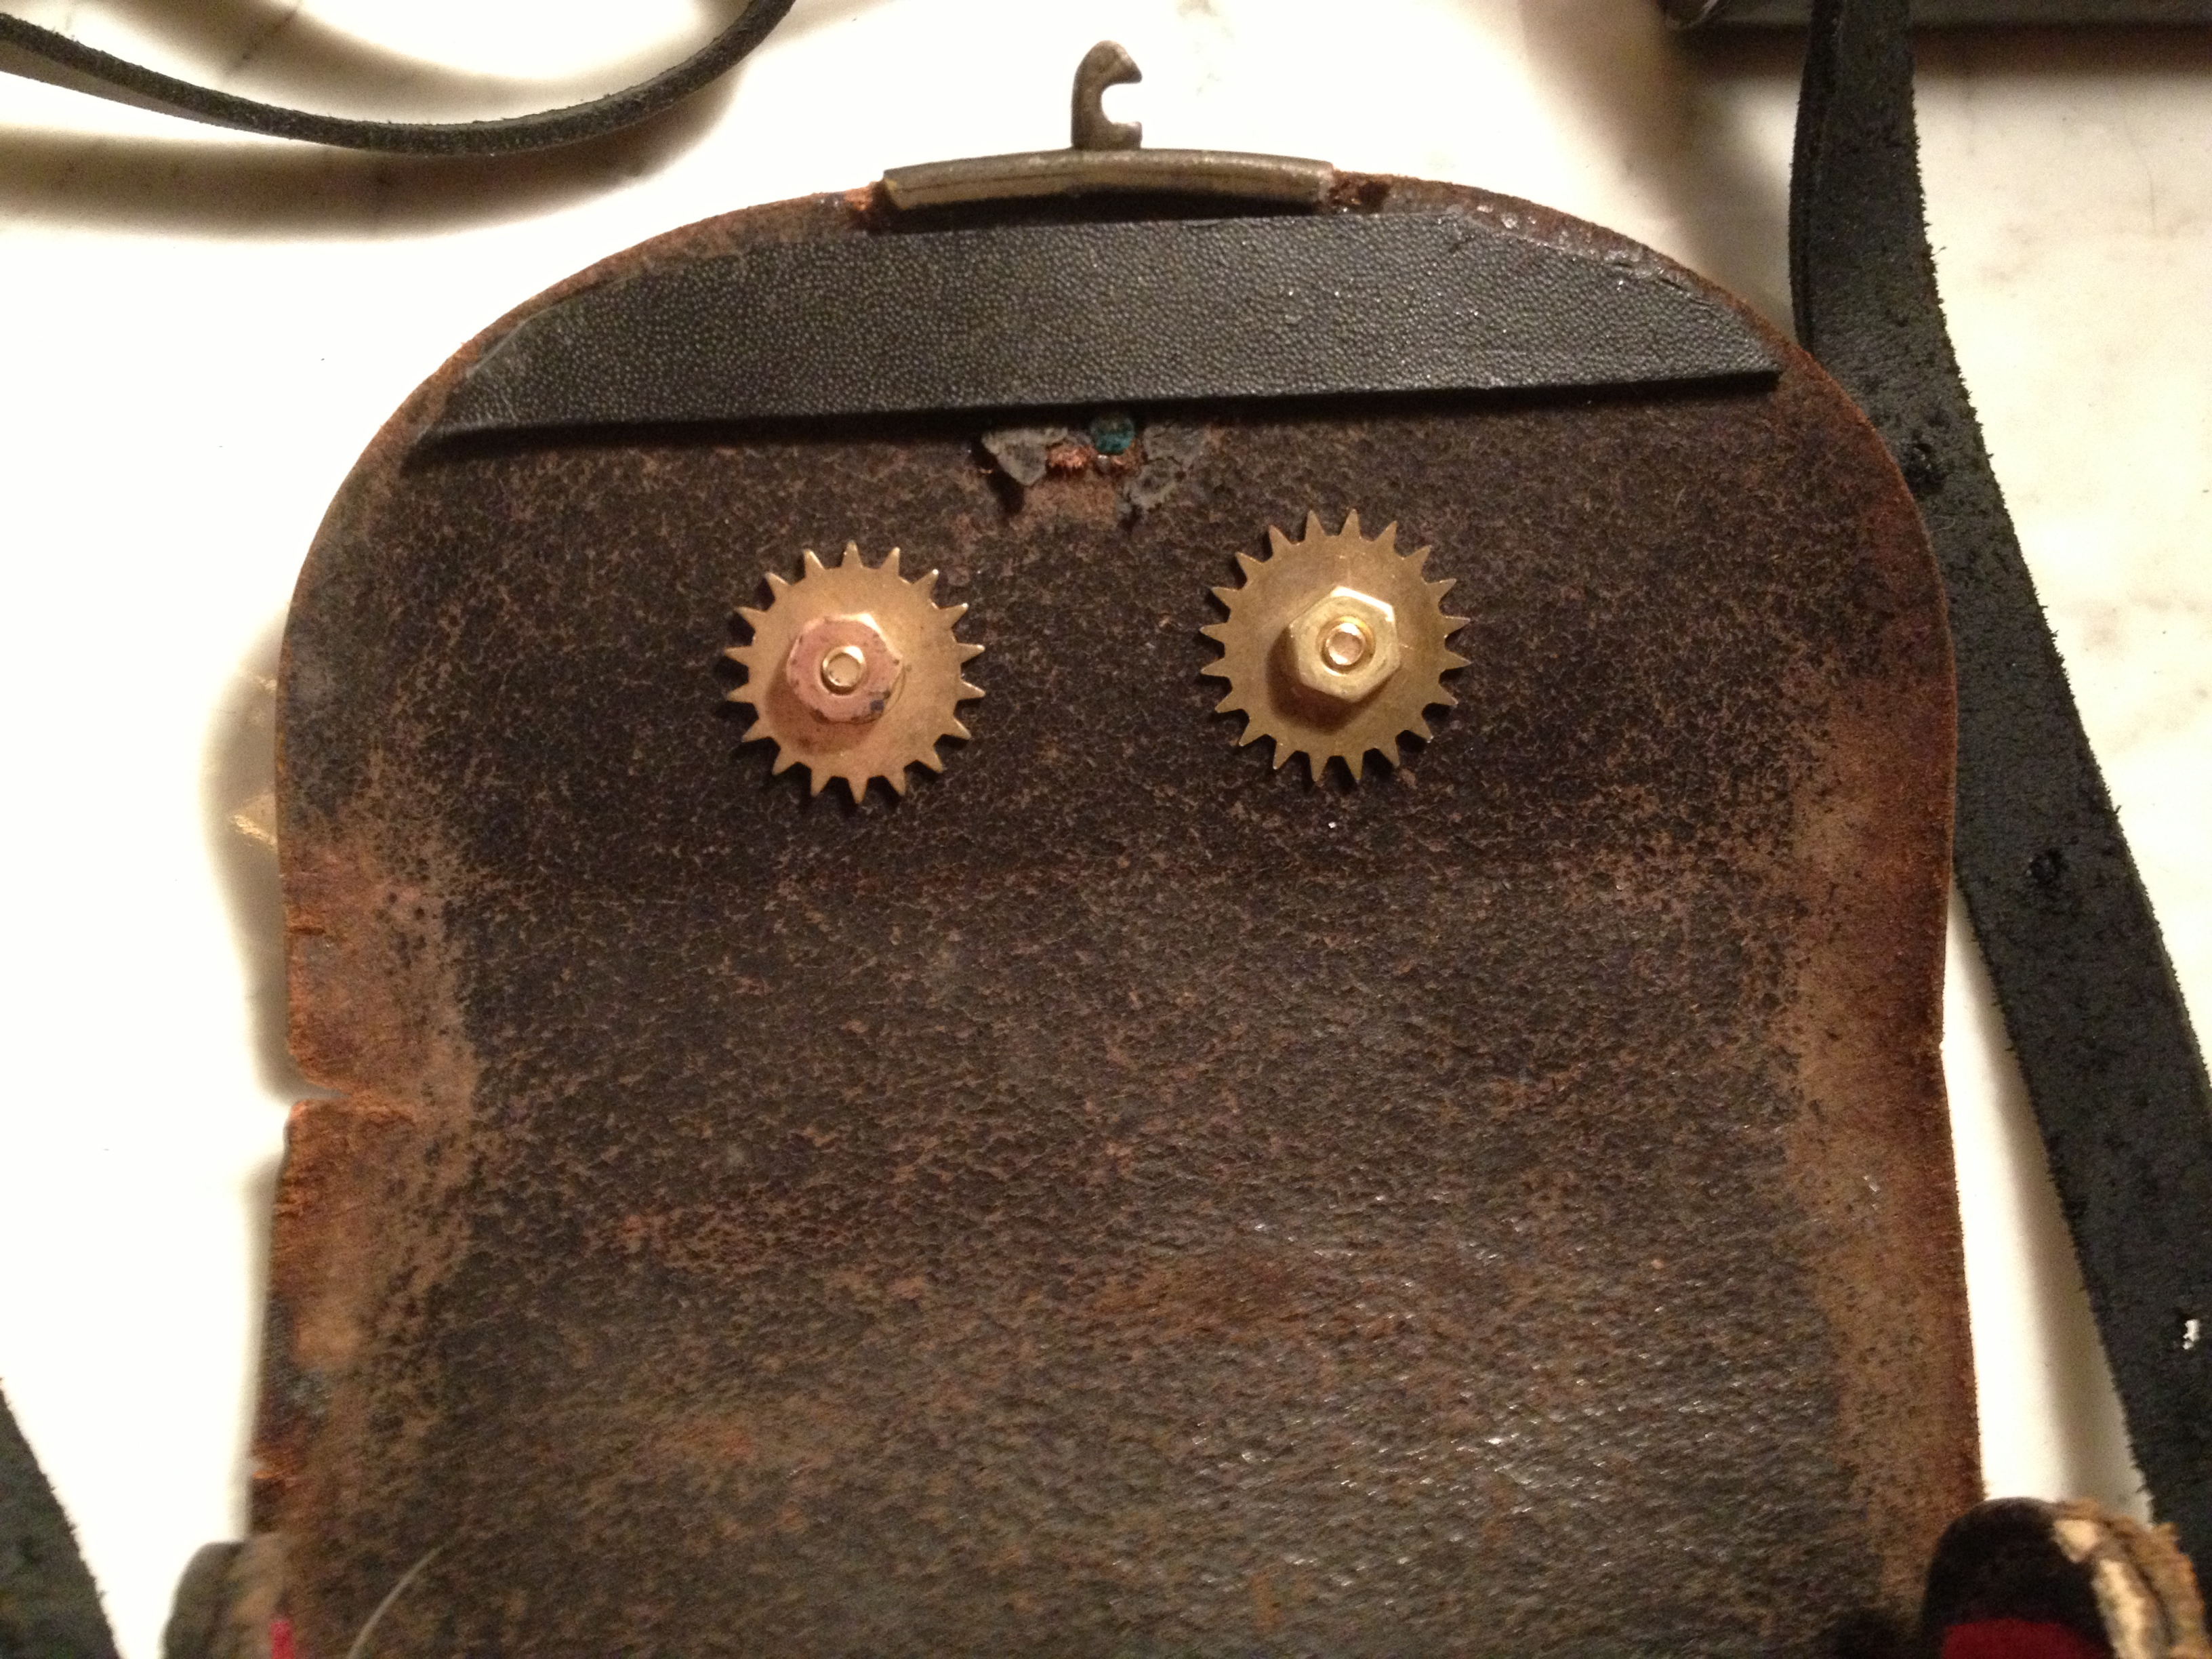 i_gearz_steampunk_adventure_case_medium_size_antique_leather_carry_case_p_368_bags_and_backpacks_3.JPG